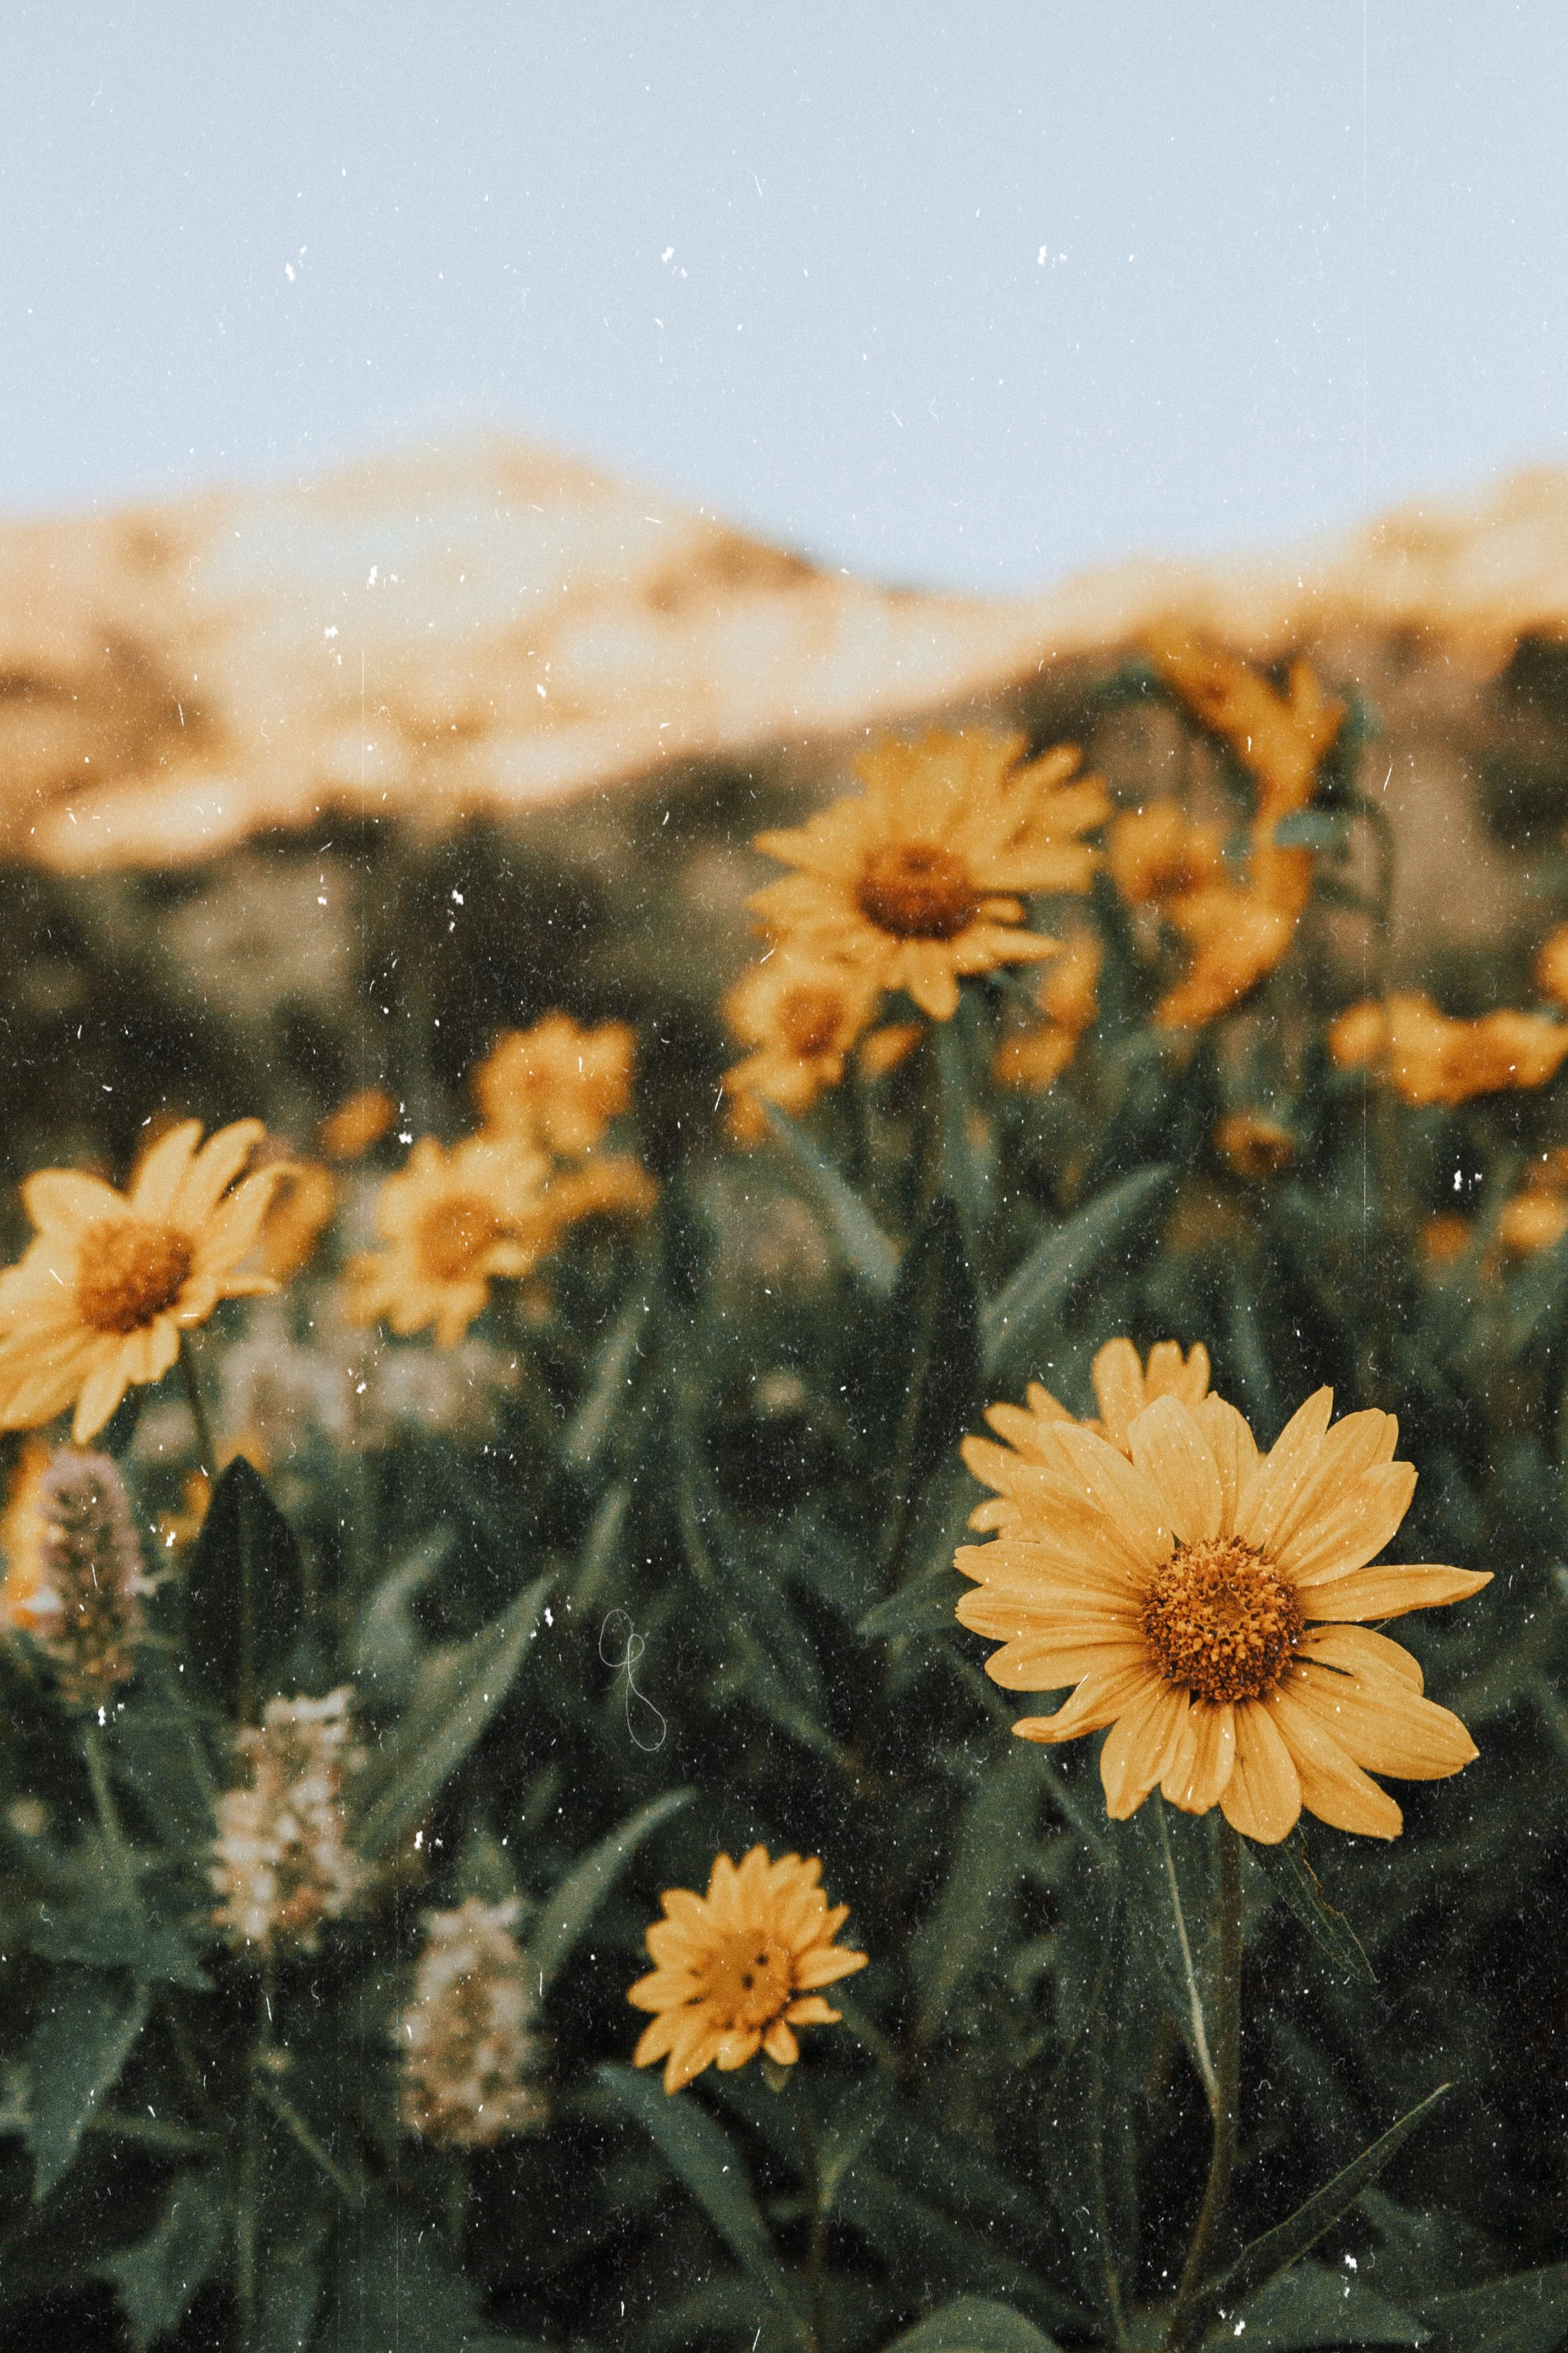 25+ Vsco Landscape Floral Wallpaper Pictures and Ideas on